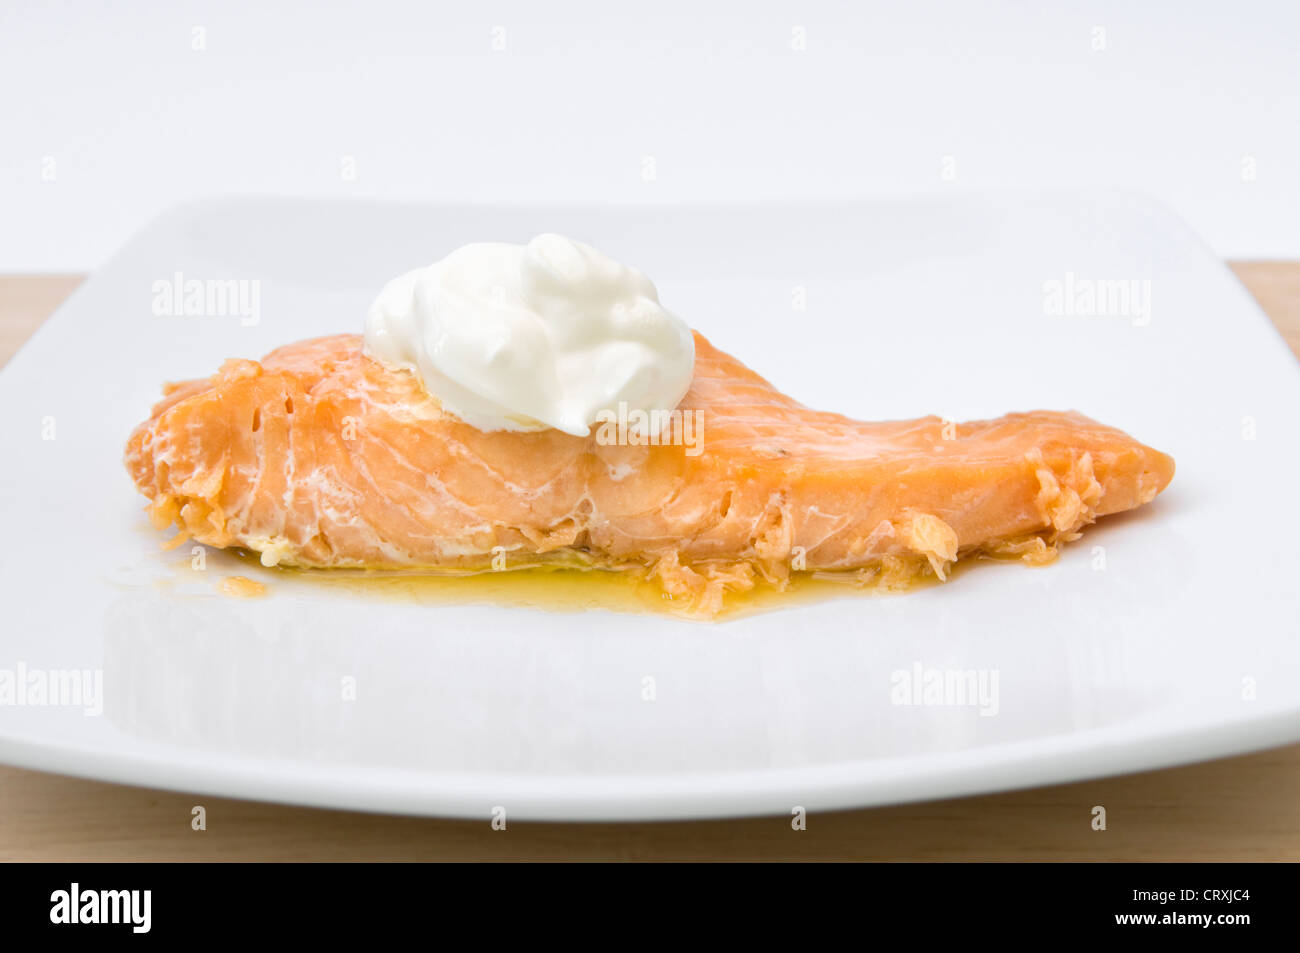 Cooked salmon with dollop of creme fraiche and melted butter on white plate - Stock Image